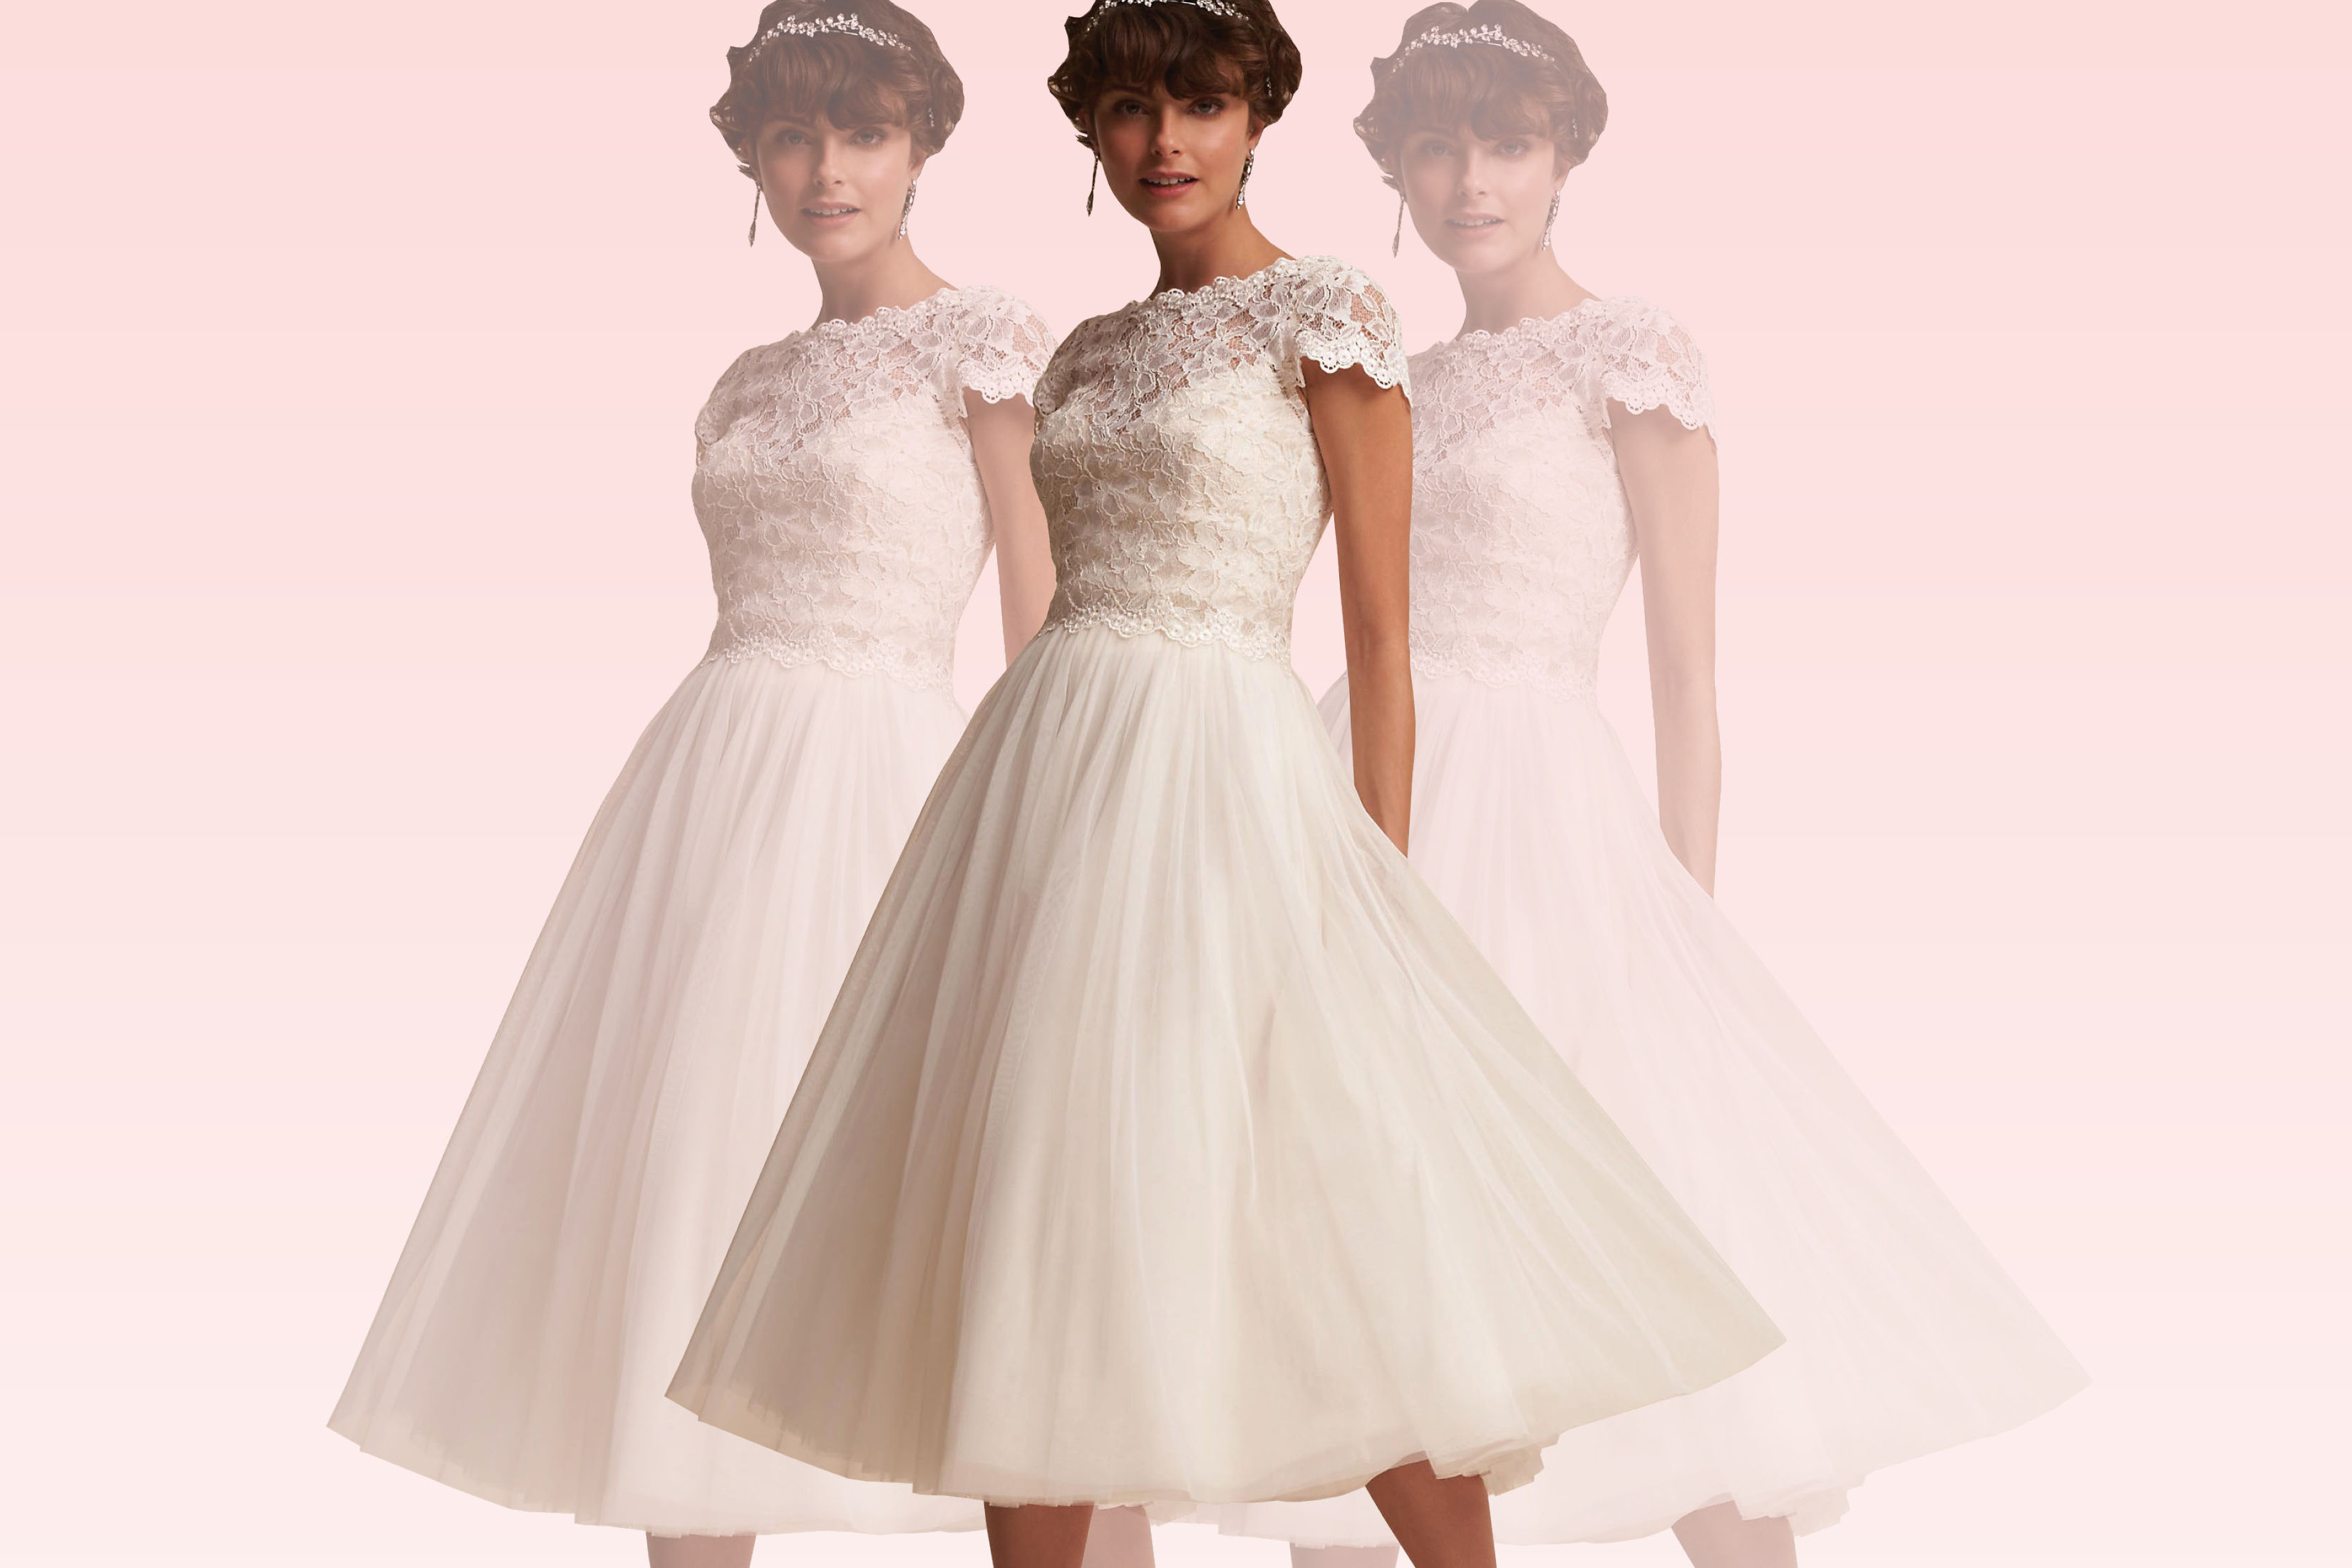 "'80s-Inspired Wedding Dresses for the Bride Who Loves ""Pretty in Pink"""